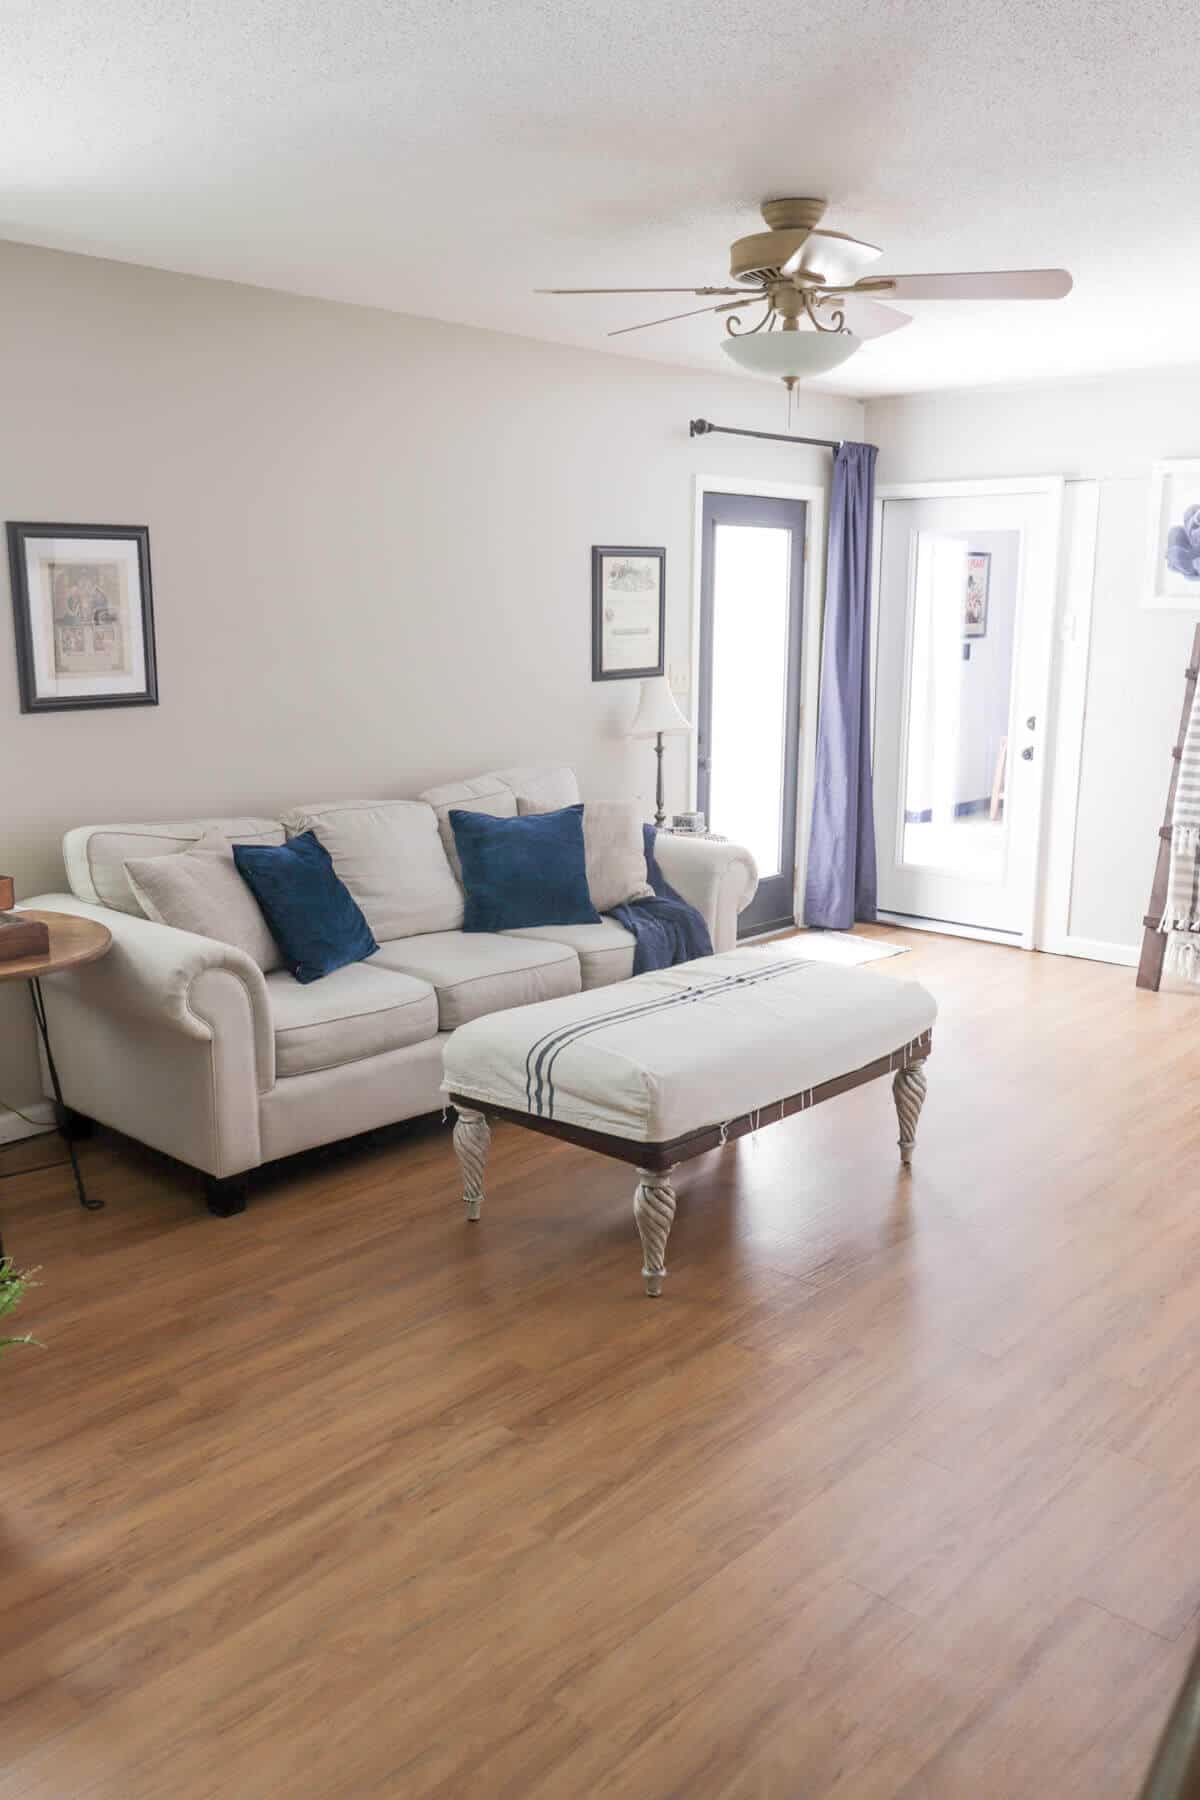 basement family room with rooms to go beige couch with blue accent pillows and curtains